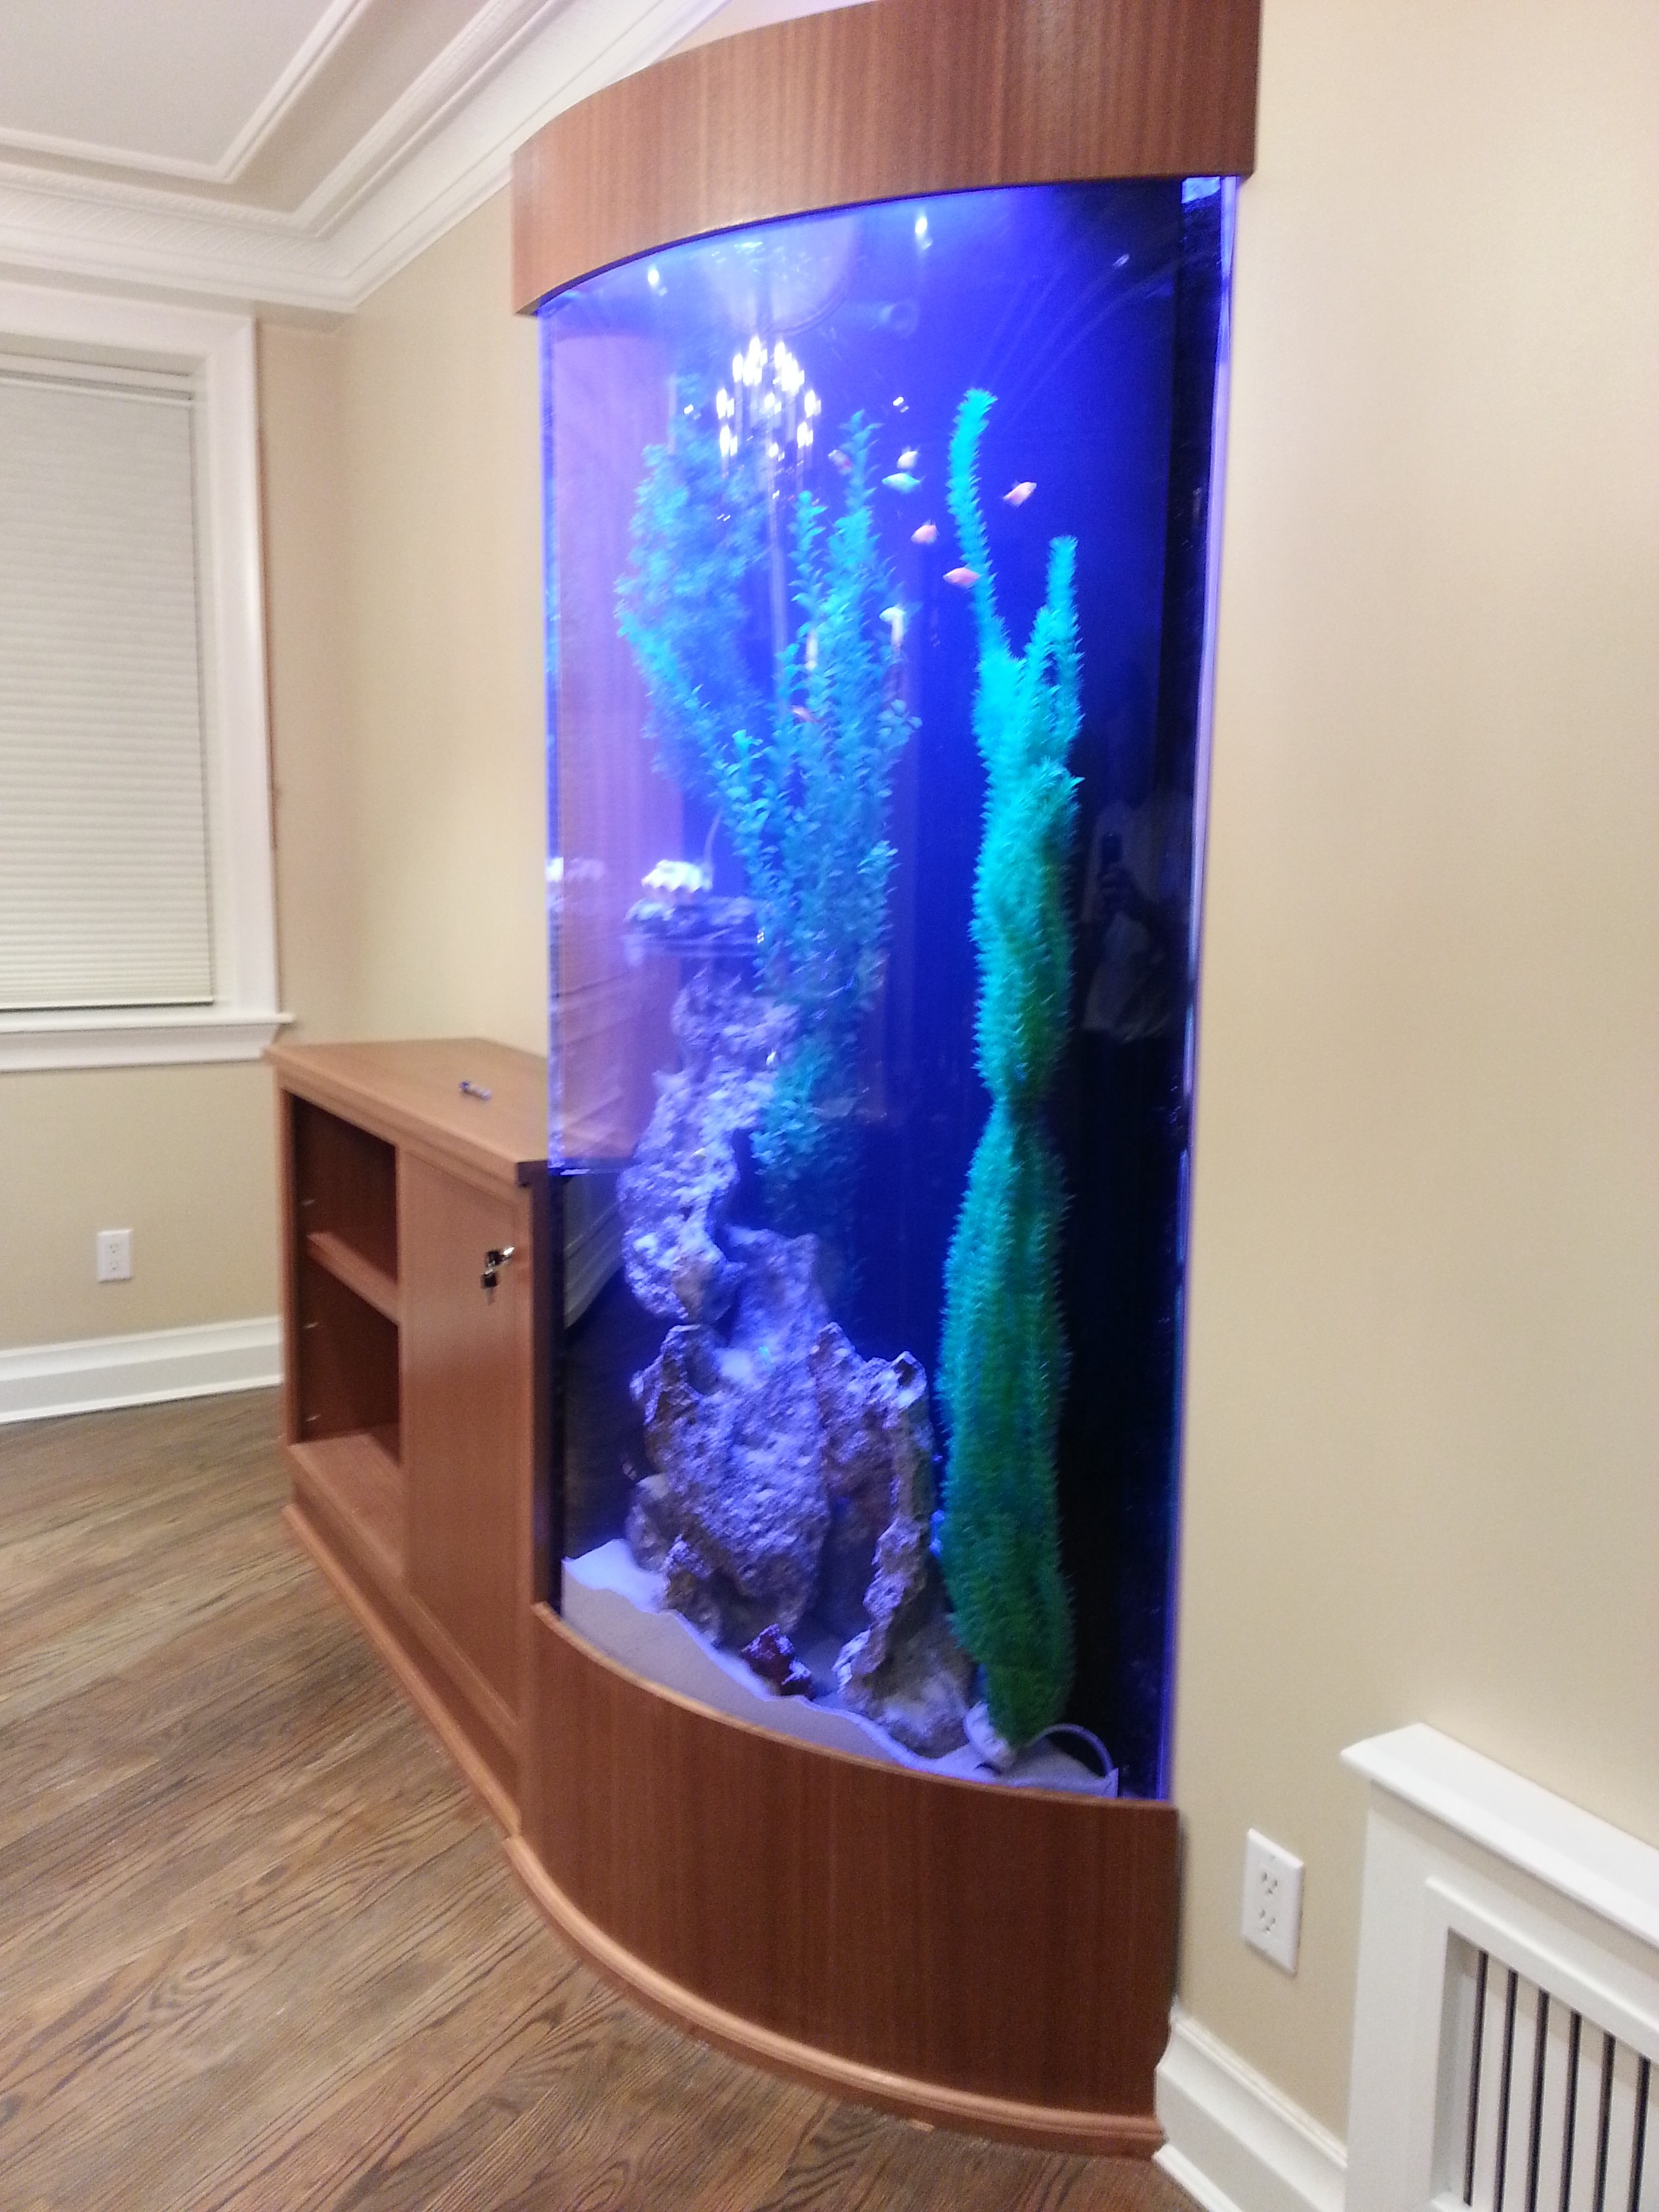 Fish tank vs aquarium -  Round Fish Tanks Aquariums All About Aquarium Design Acrylic Aquarium All About Aquarium Gl Vs